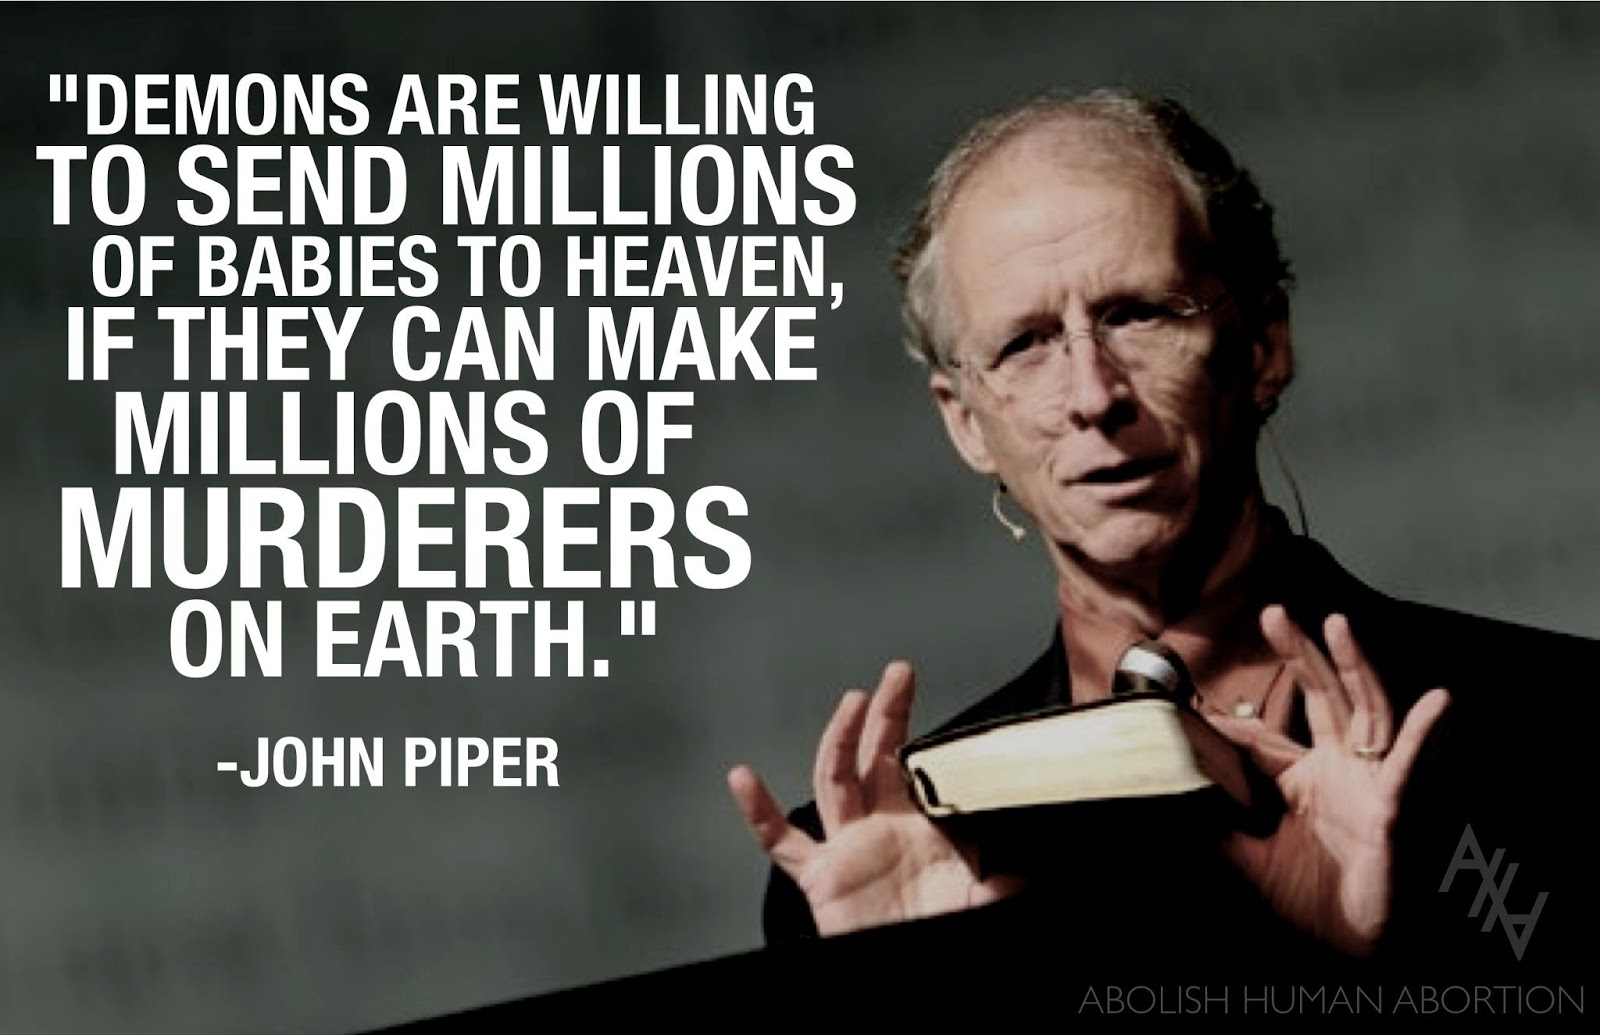 Quotes About Abortion Abwehr 1109 Soldier Executioner & Pro Lifer John Piper On